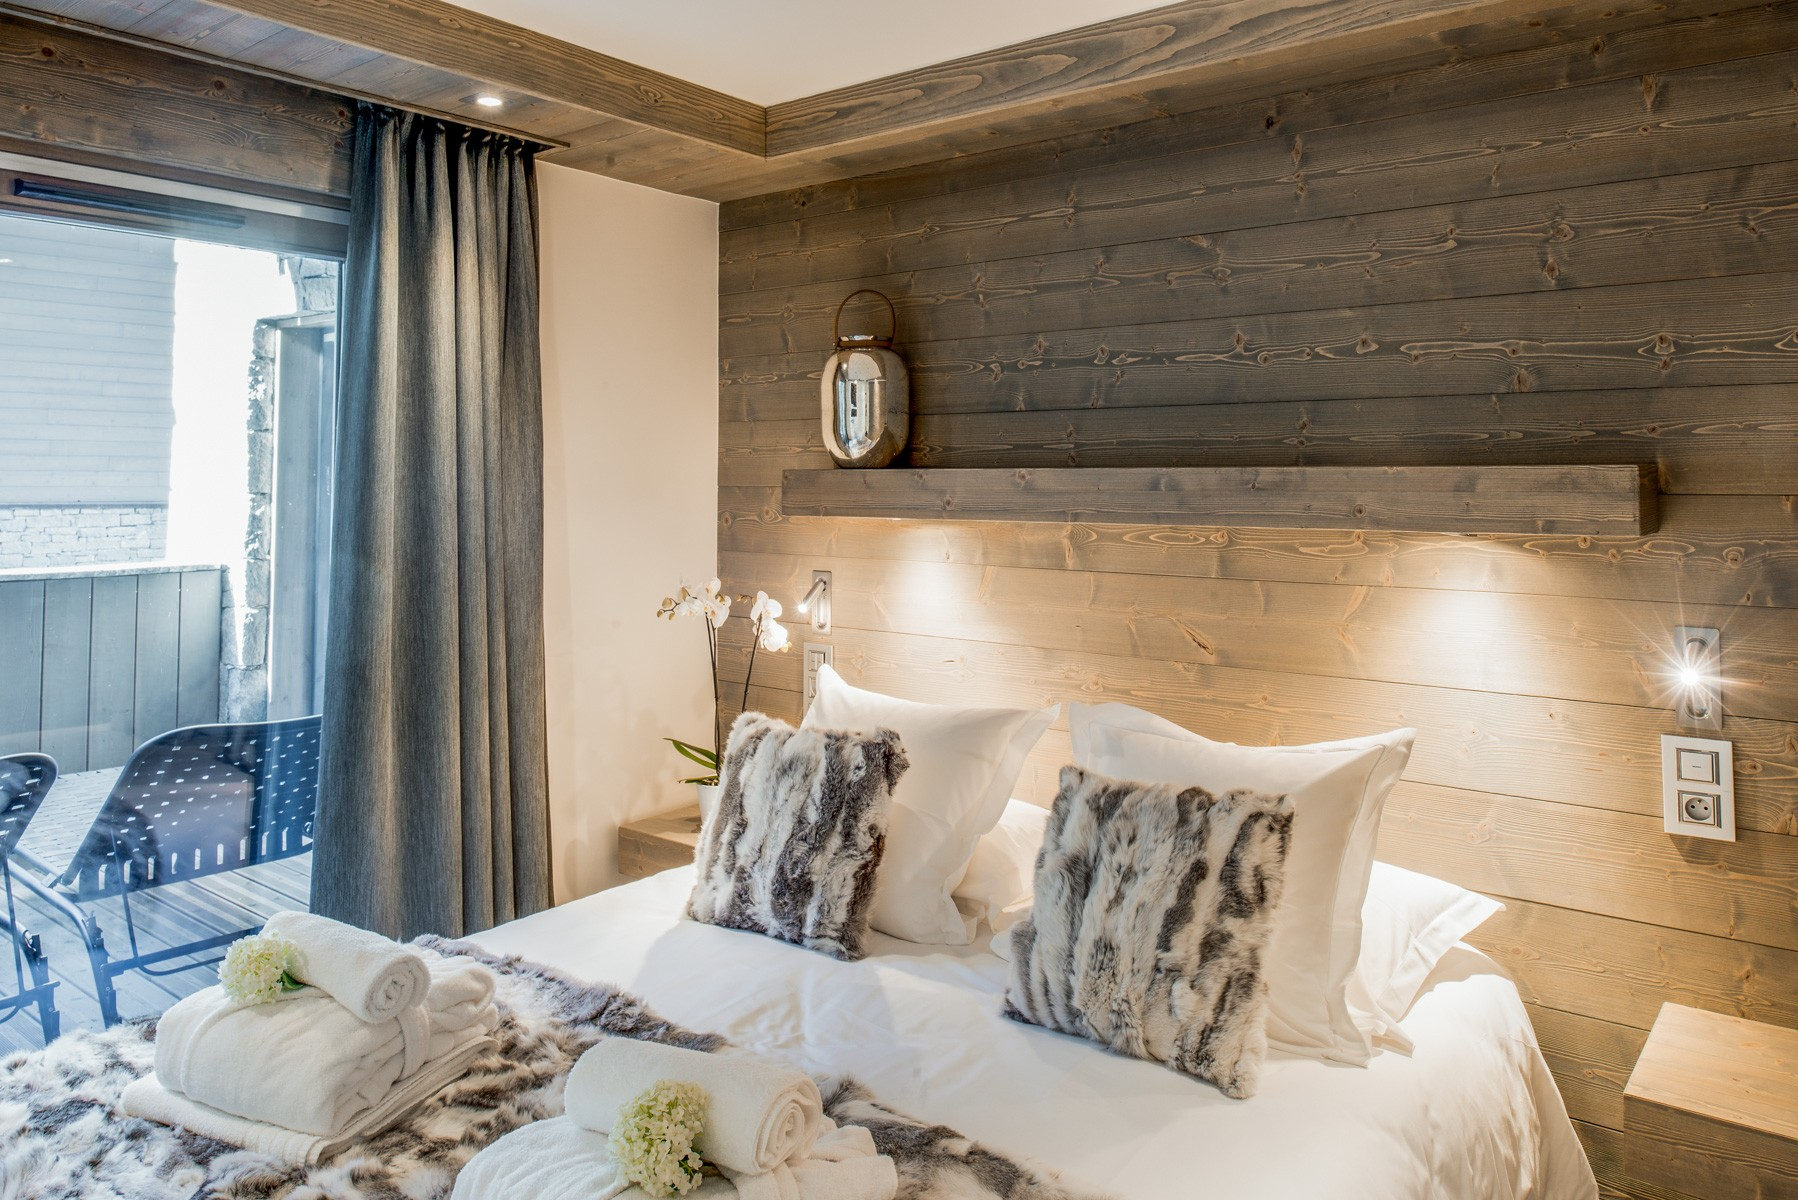 Courchevel 1650 Location Appartement Luxe Amurile Chambre 6